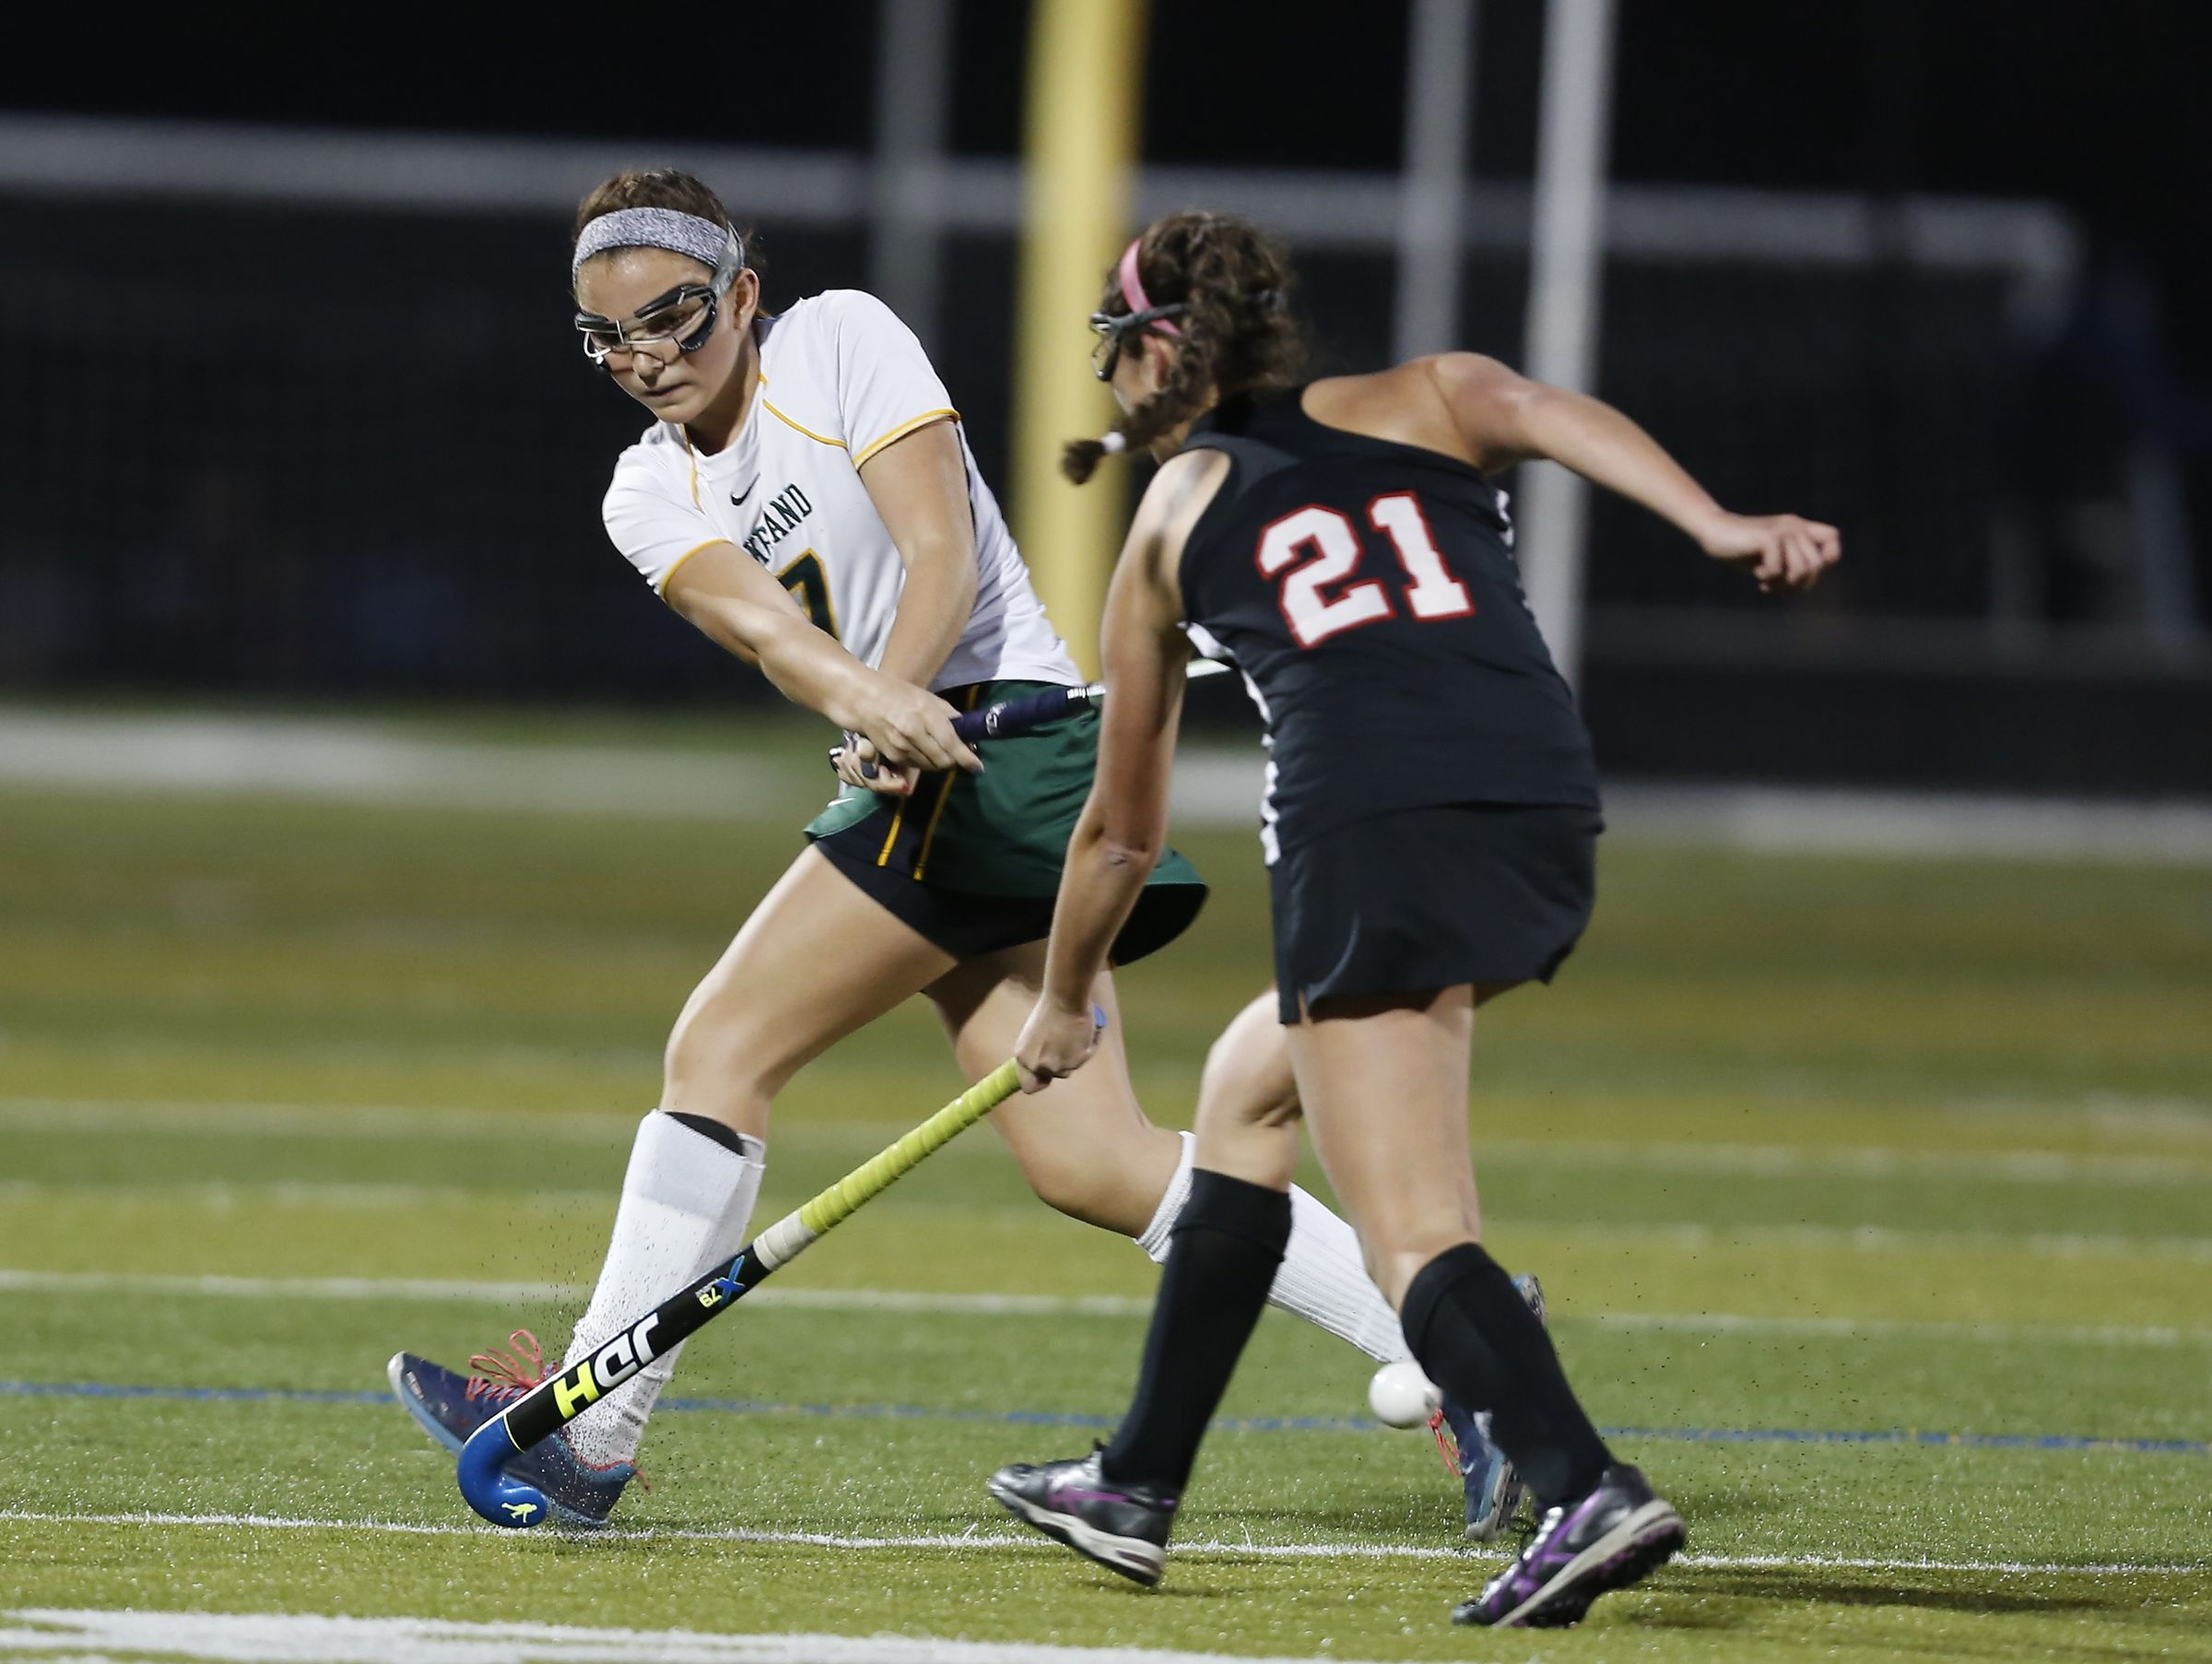 Lakeland's Caroline Cahill pass the ball around Rys's Kally Ott (21) during their 4-1 win in the Class B field hockey section finals at Brewster High School on Tuesday, November 1, 2016.